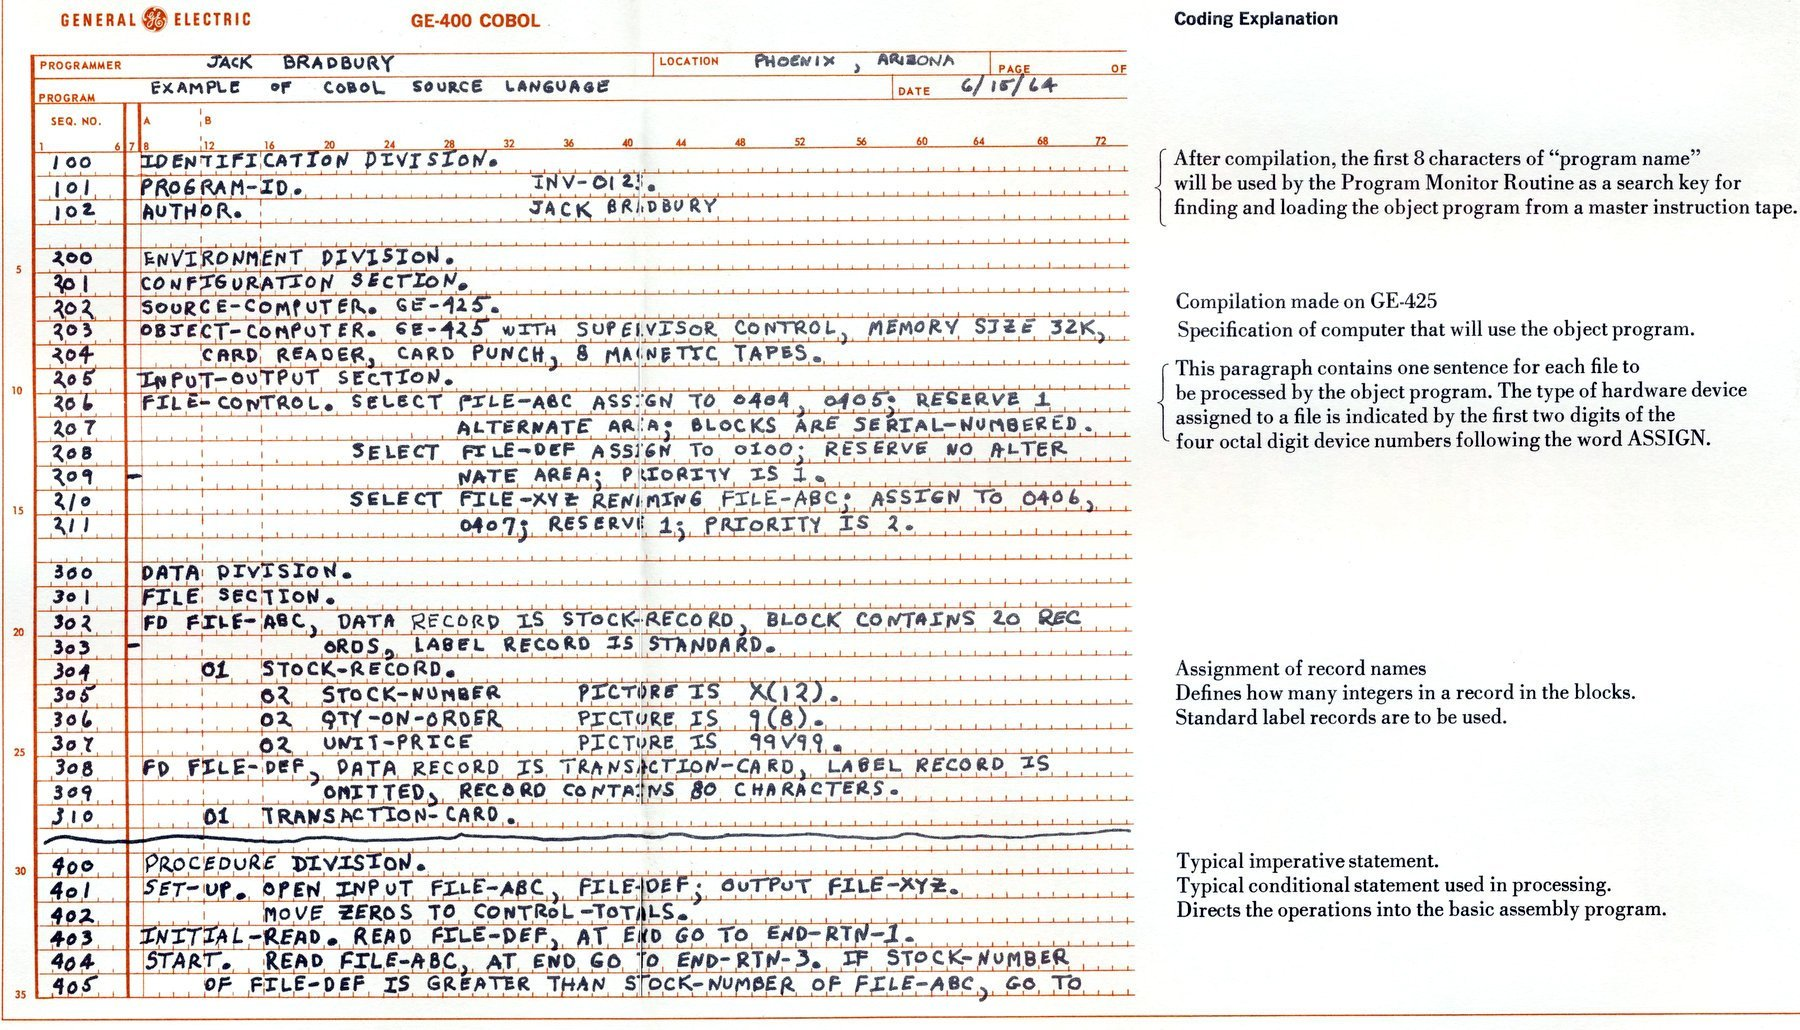 COBOL programming language from the sixties - General Electric (1)